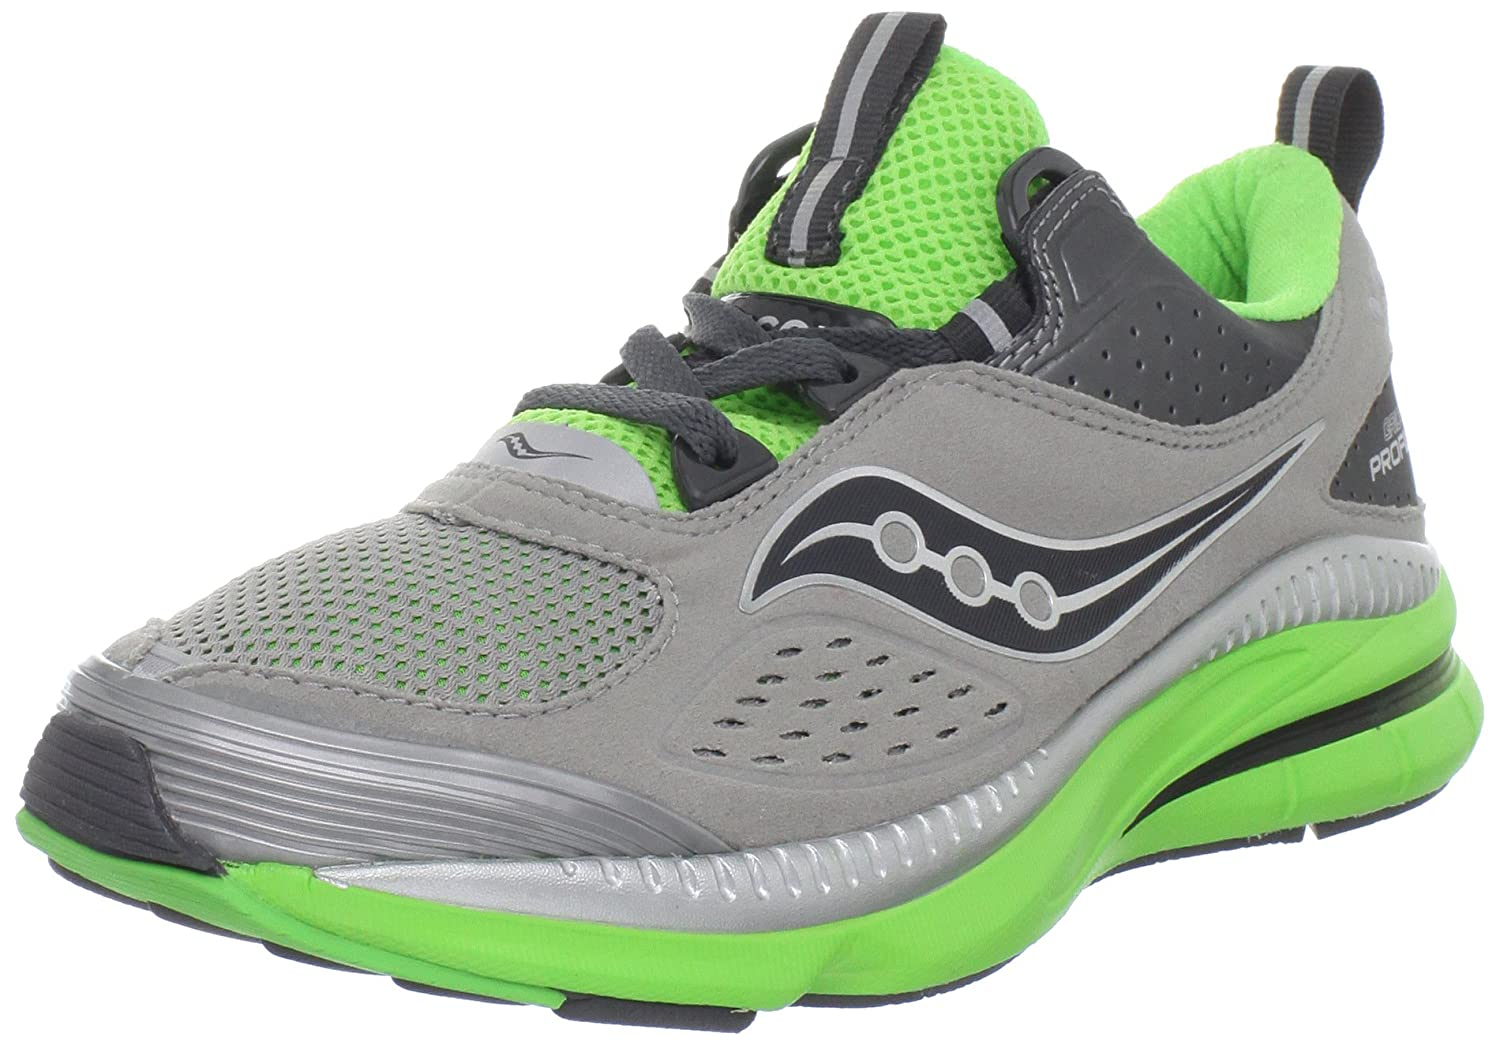 69669f8f4e6c0 Saucony Women's Grid Profile Running Shoe,Grey/Green,5 M US: Amazon ...